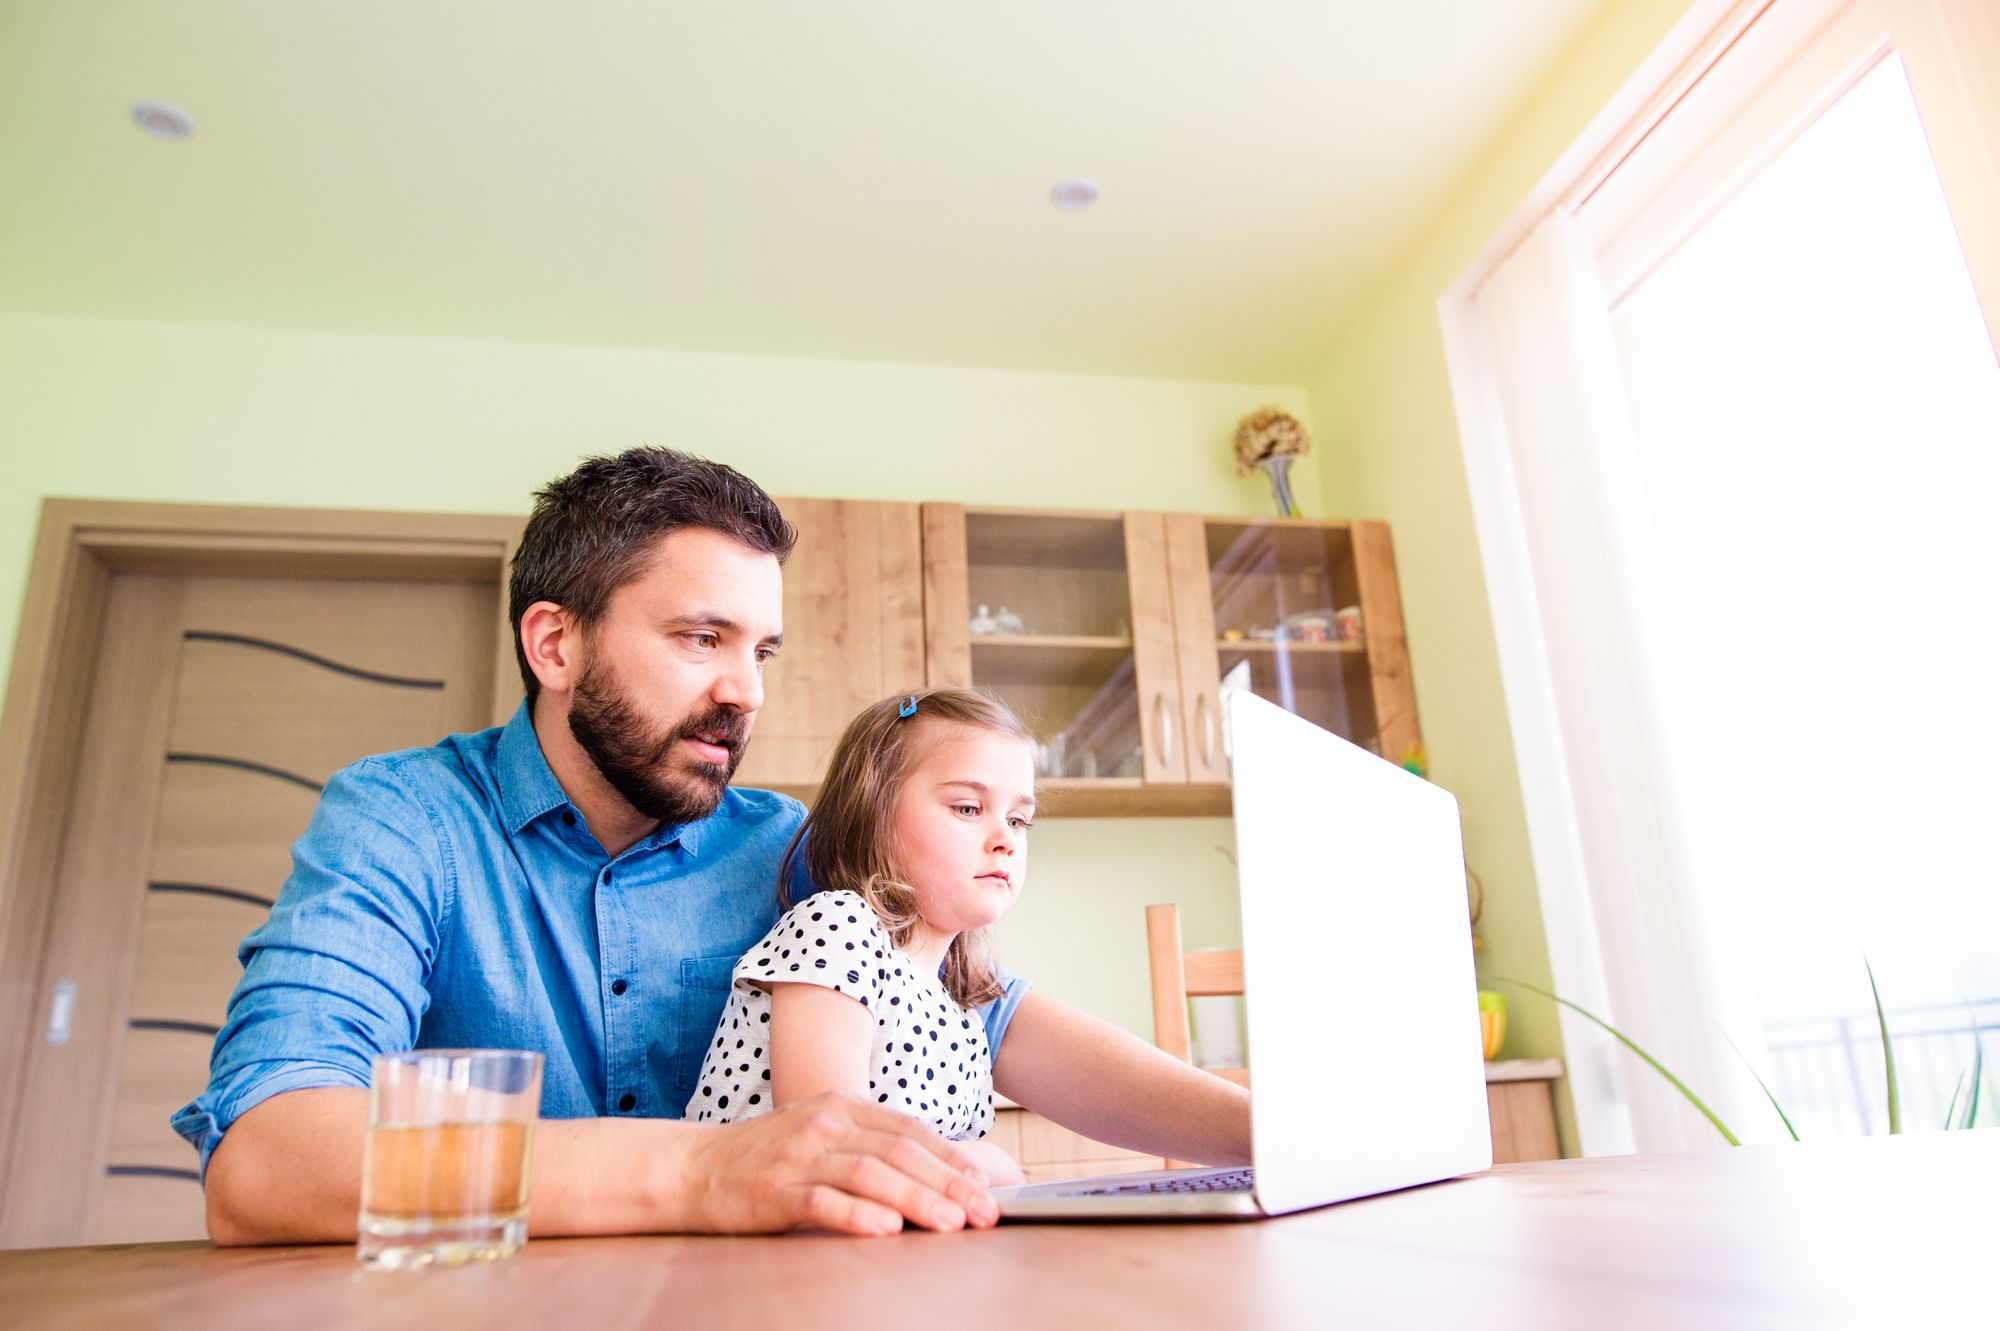 A father and daughter take an online class together while sitting at their kitchen table